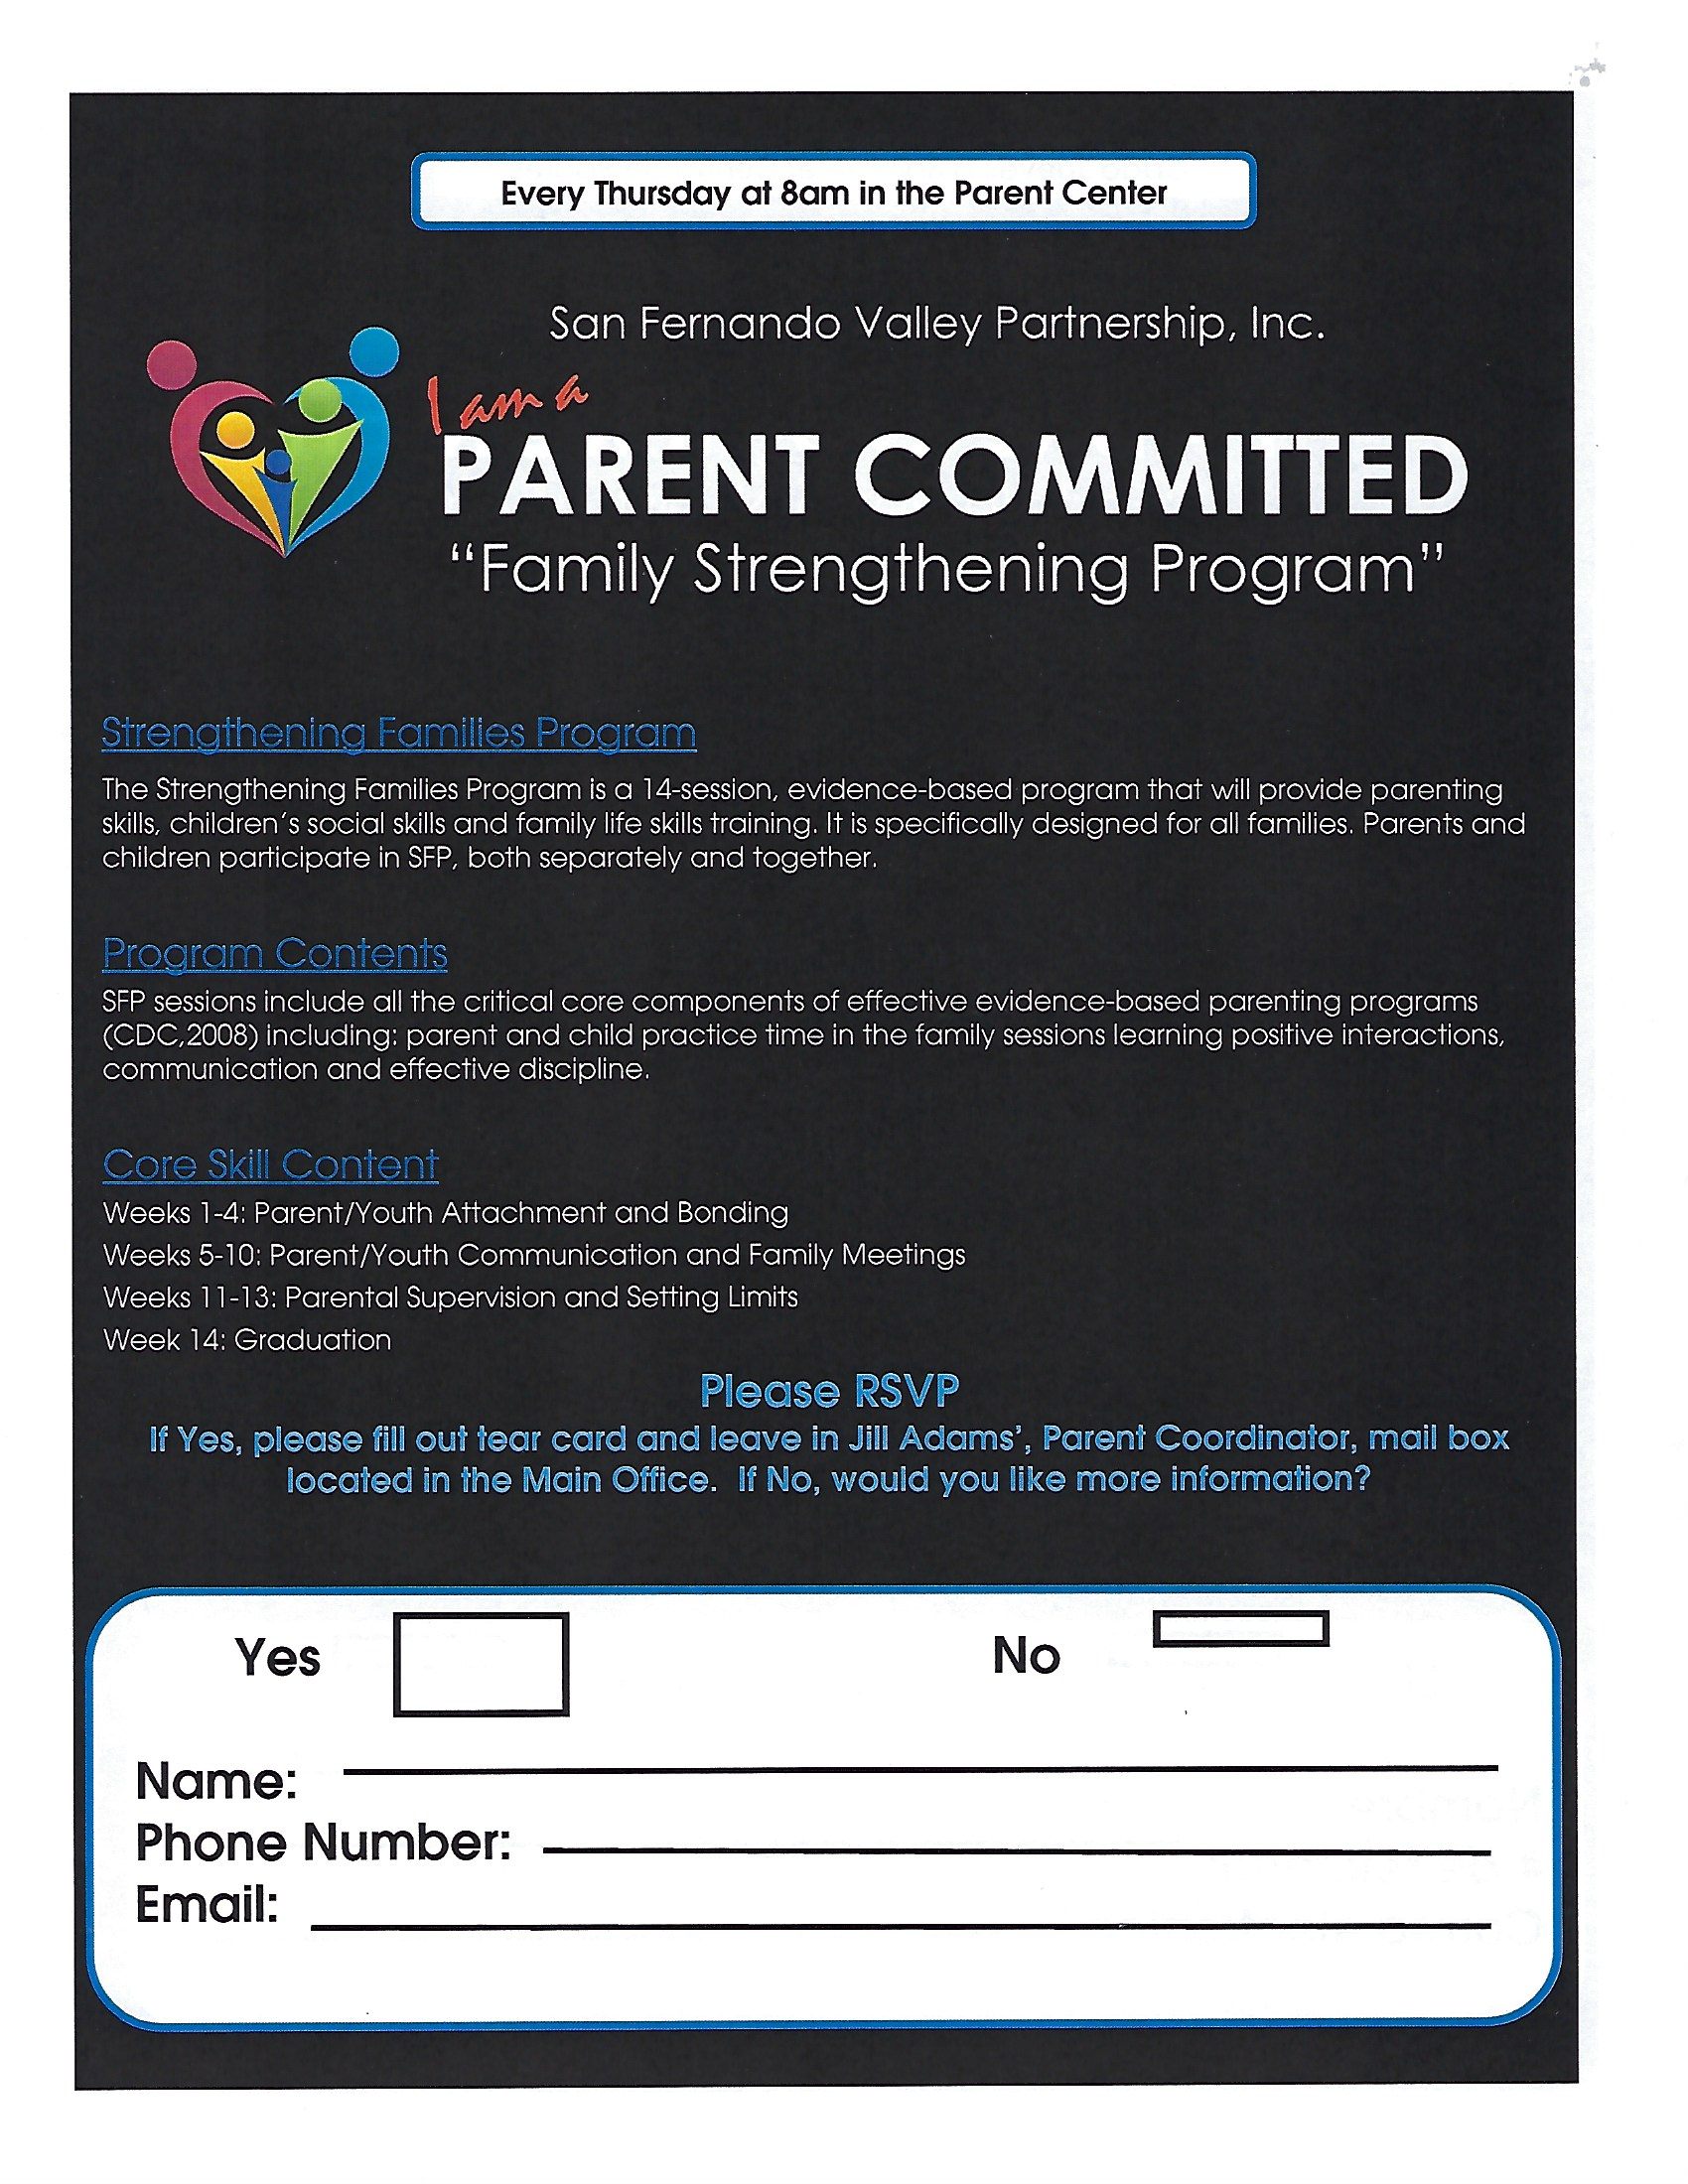 PARENT COMMITTED THURSDAY MEETING 9:15am